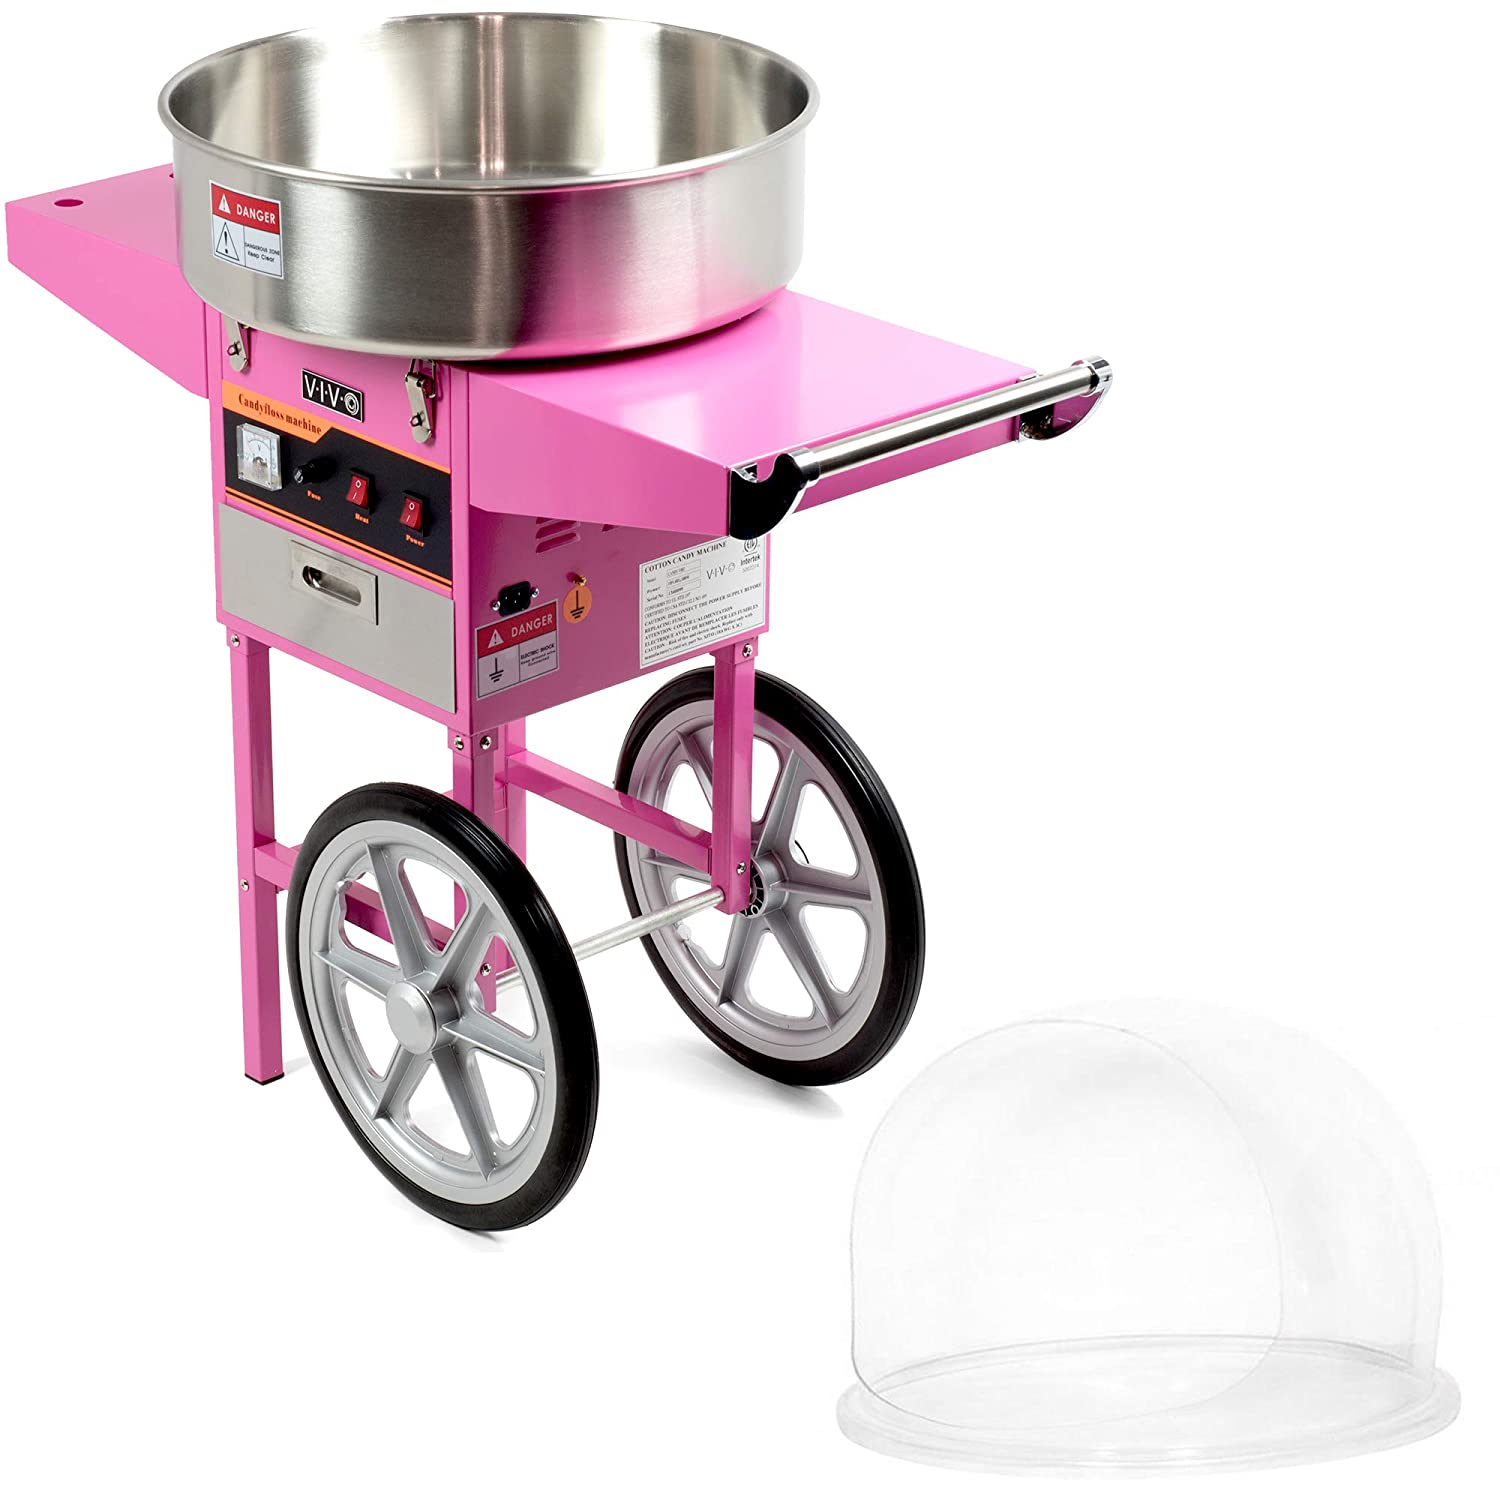 VIVO Pink Electric Commercial Cotton Candy Machine/Candy Floss Maker   Mobile Cart with Bubble Shield (CANDY-KIT-2)